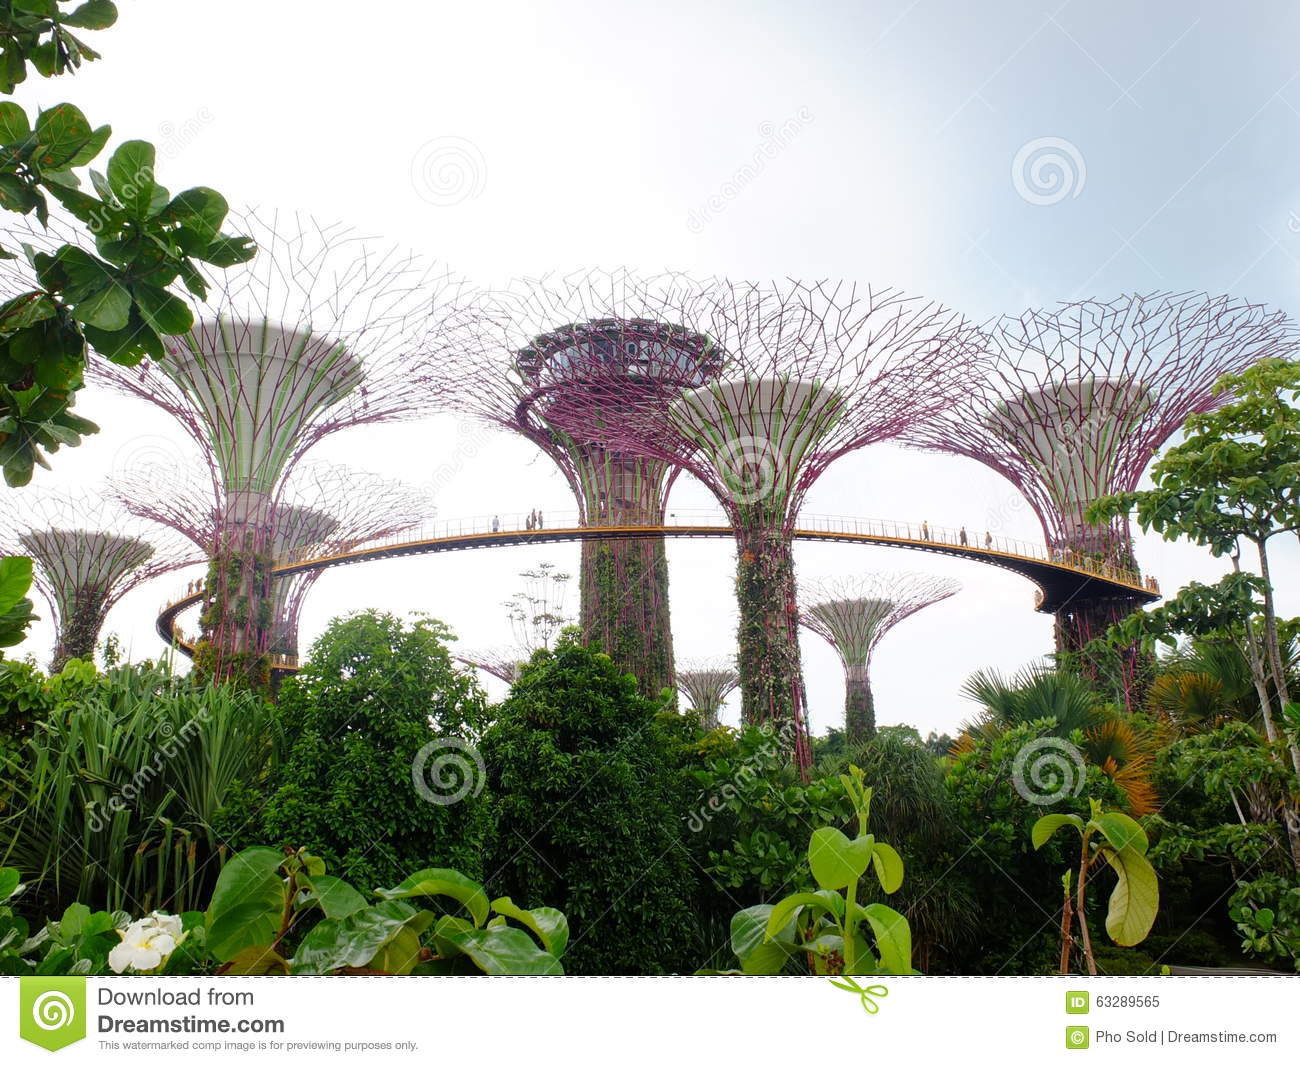 Gardens By The Bay Is A Nature Park Spanning 101 Hectares 250 Acres Of Reclaimed Land2 In Central Singapore Adjacent To Marina Reservoir